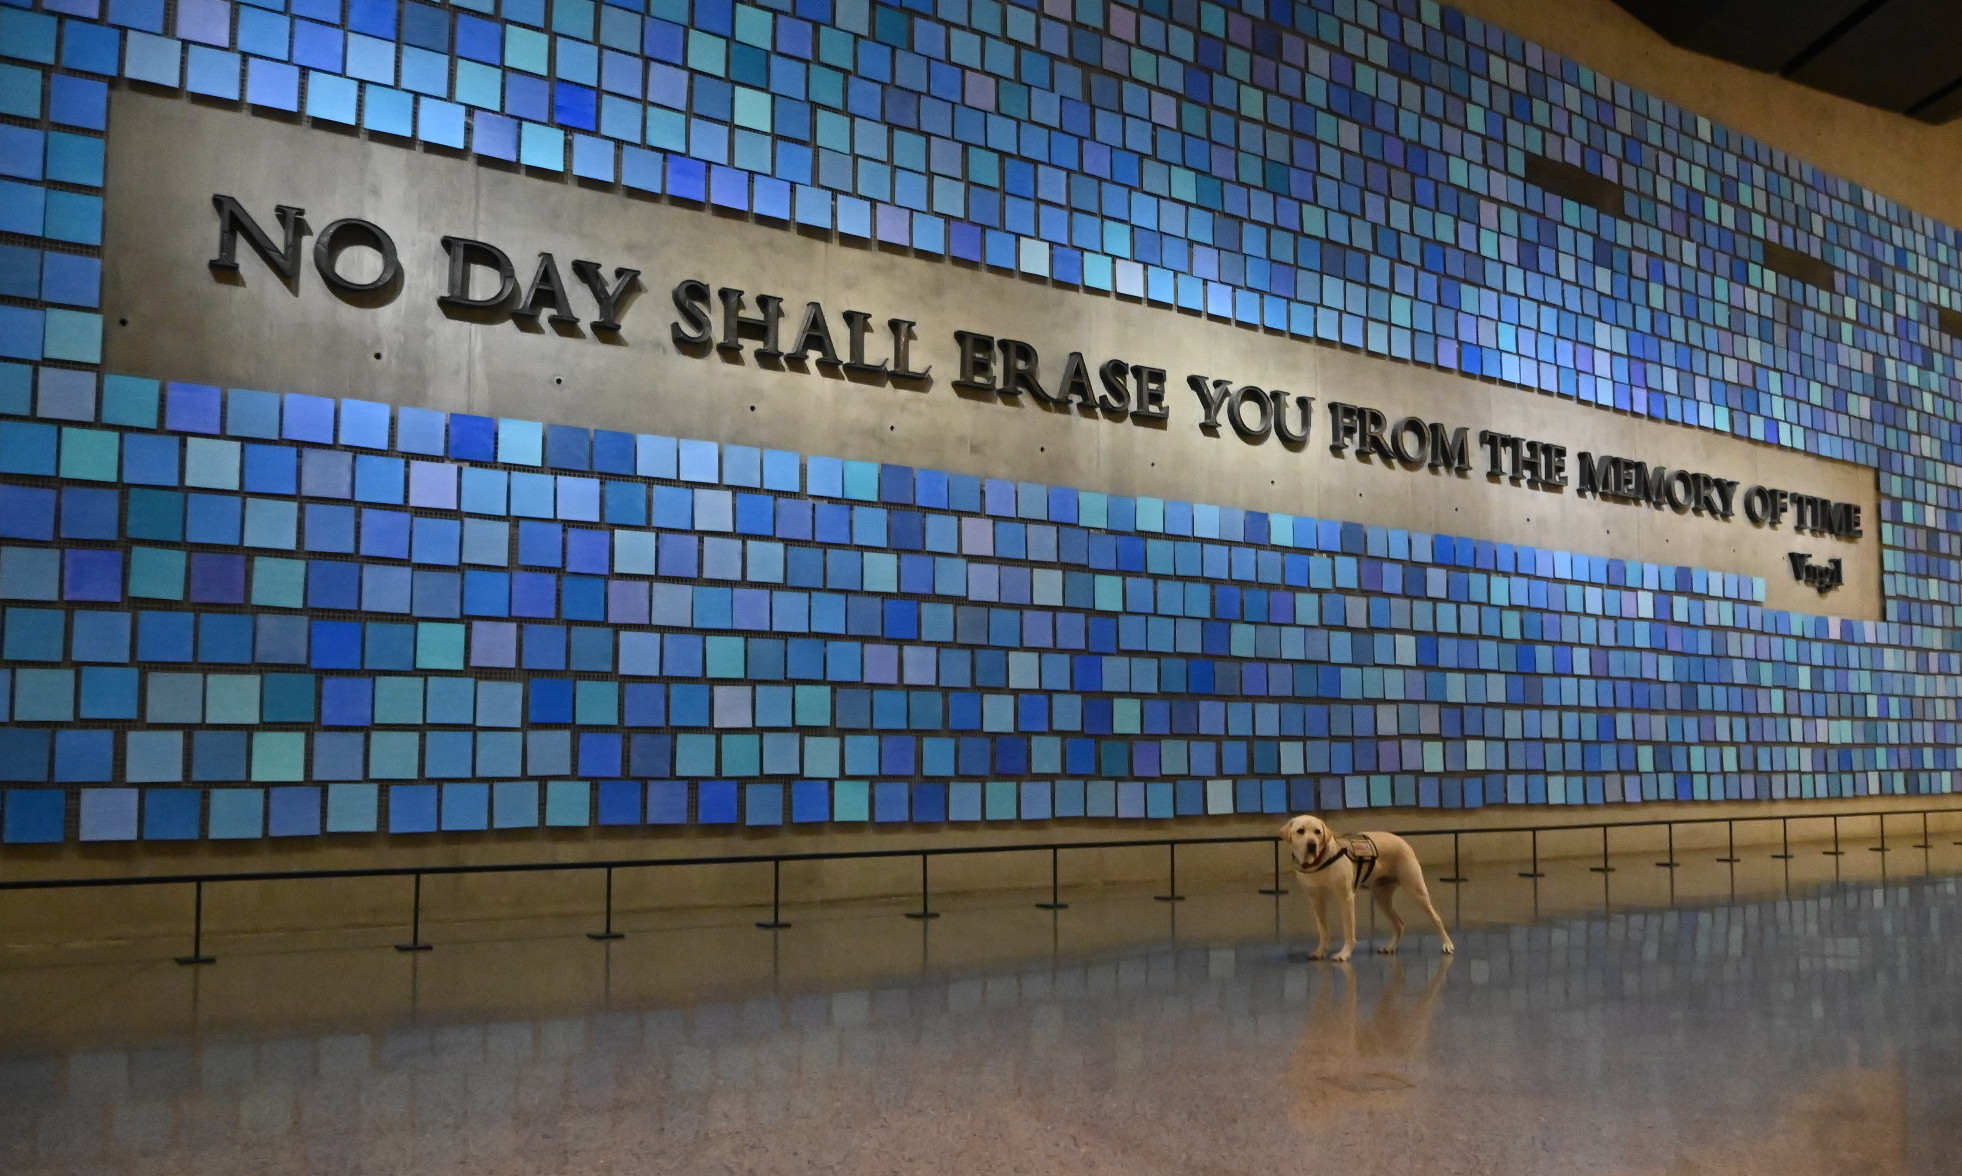 "A yellow Labrador retriever stands in front of a large work of art consisting of many squares in varying shades of blue, with ""No day shall erase you from the memory of time"" emerging from the squares as iron lettering."